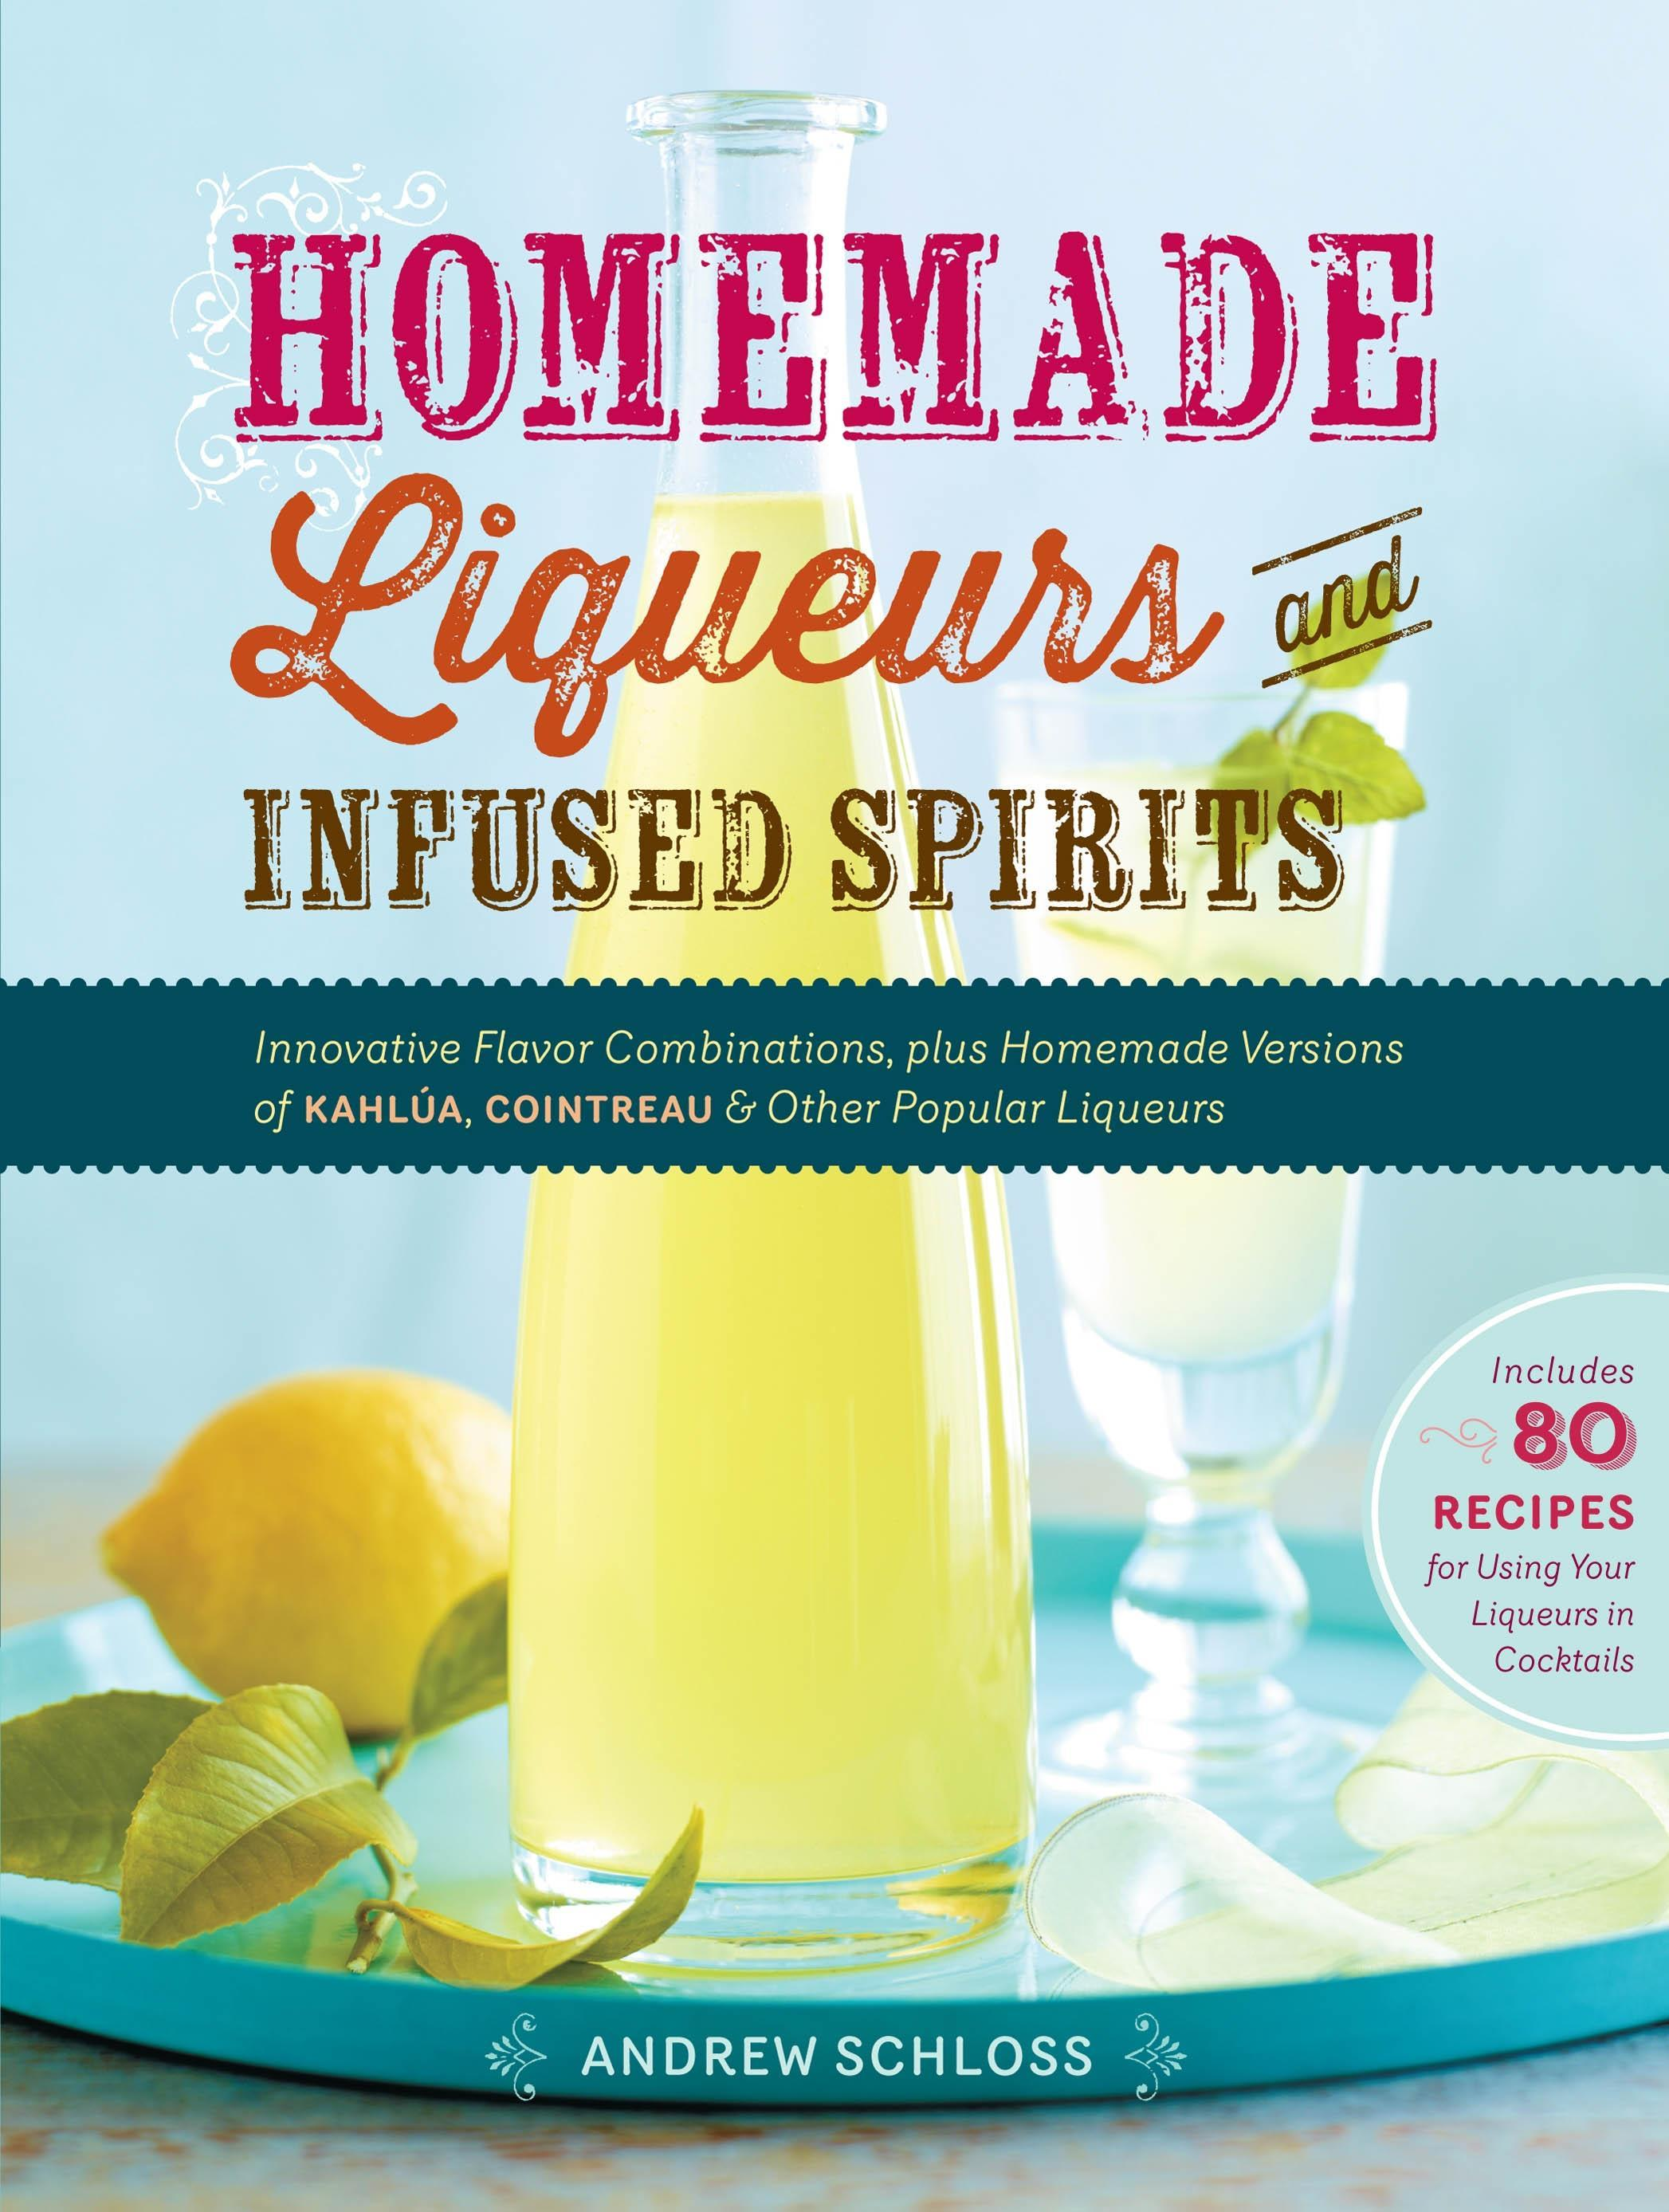 homemade liqueurs and infused spirits cookbook